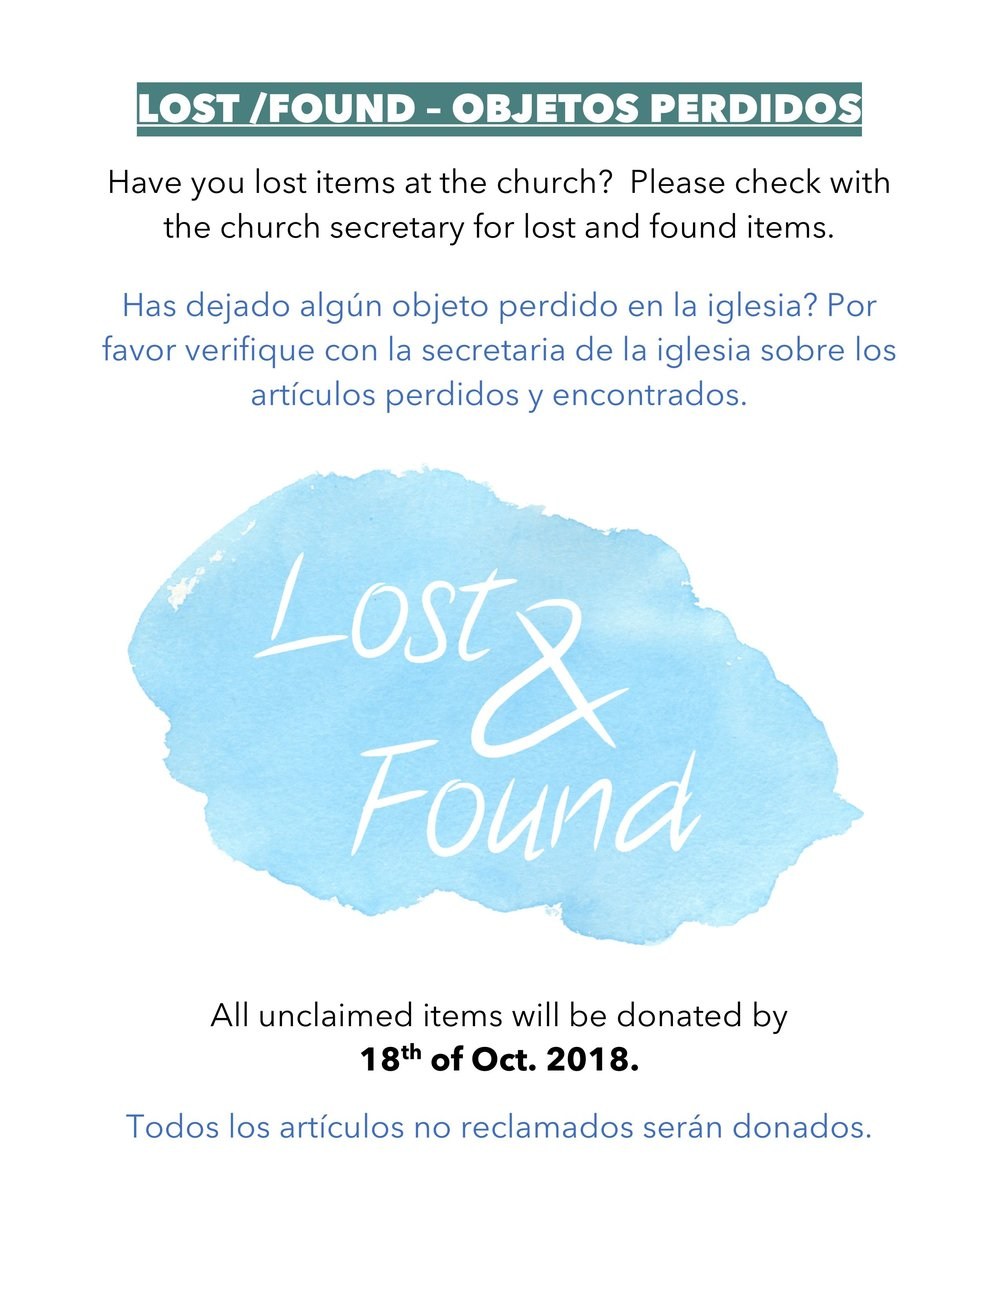 LOST AND FOUND ITEMS With Date.jpg